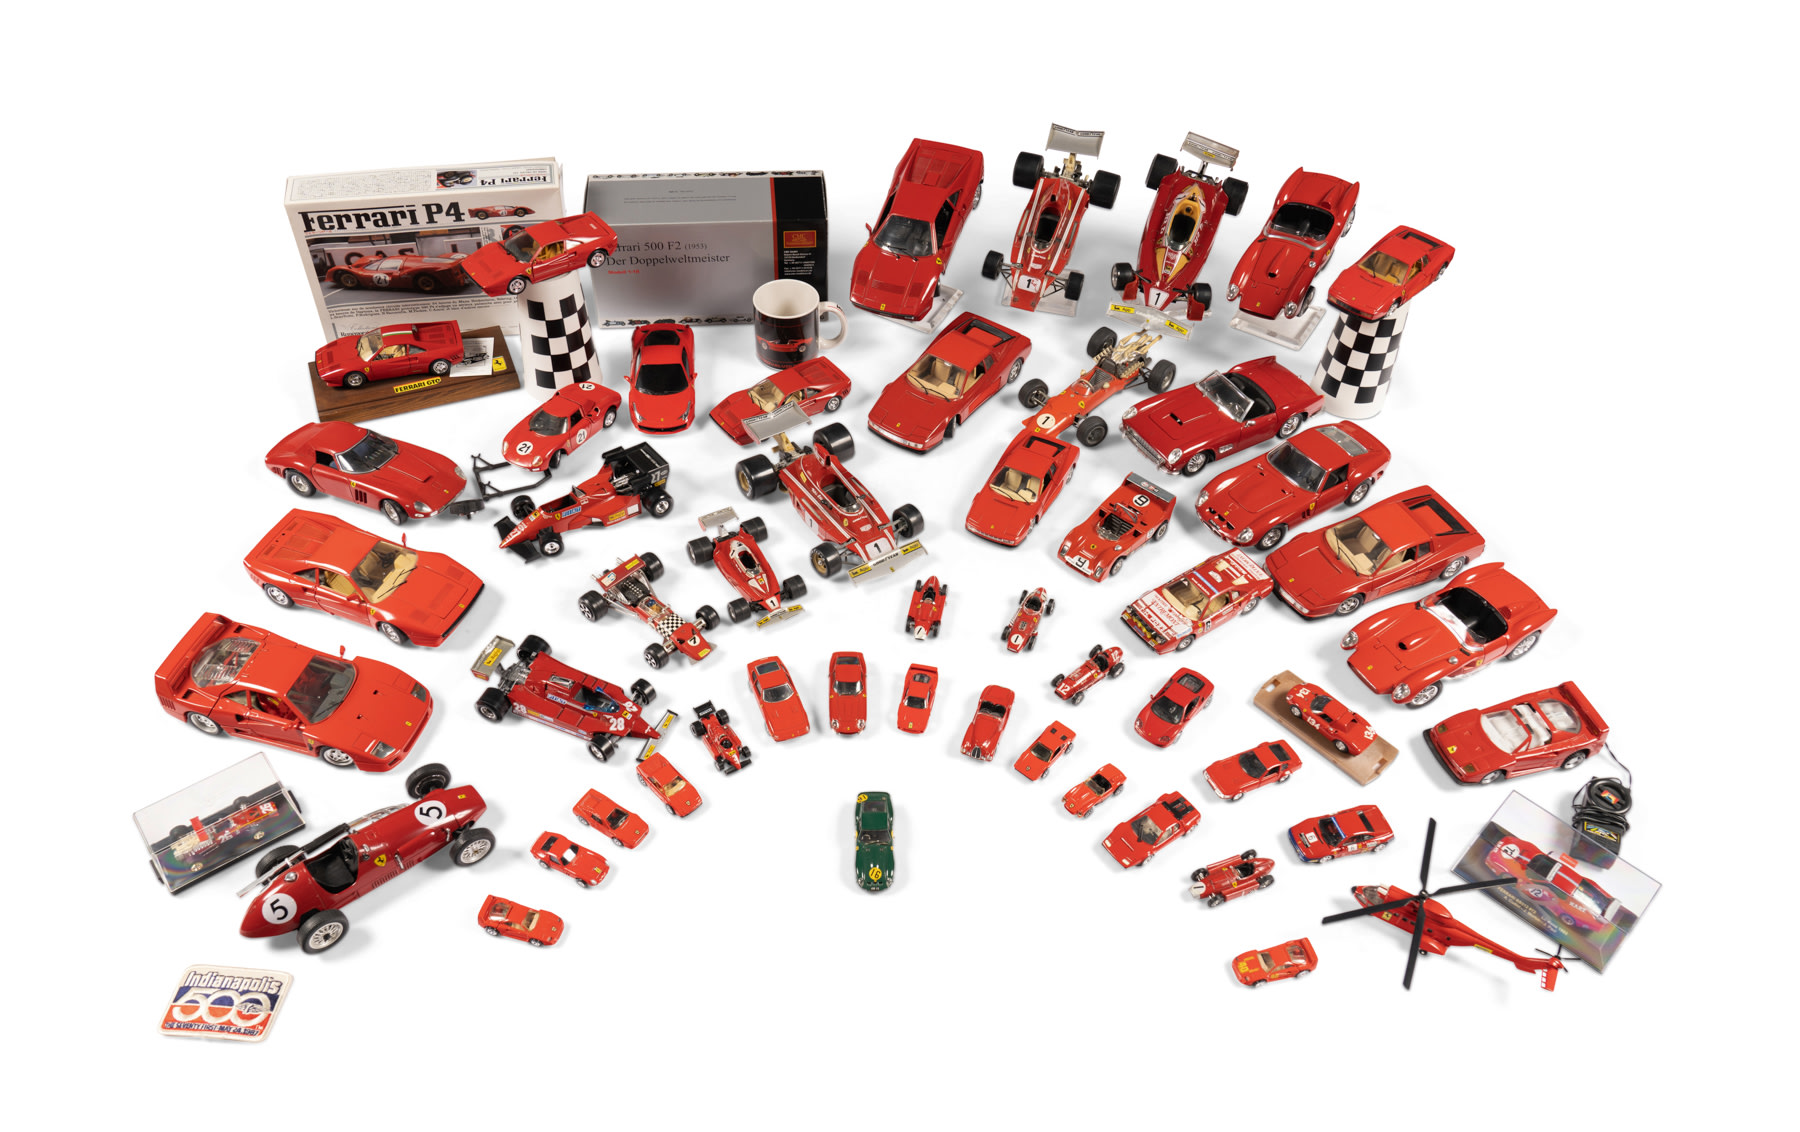 Assorted Ferrari Toy and Model Cars